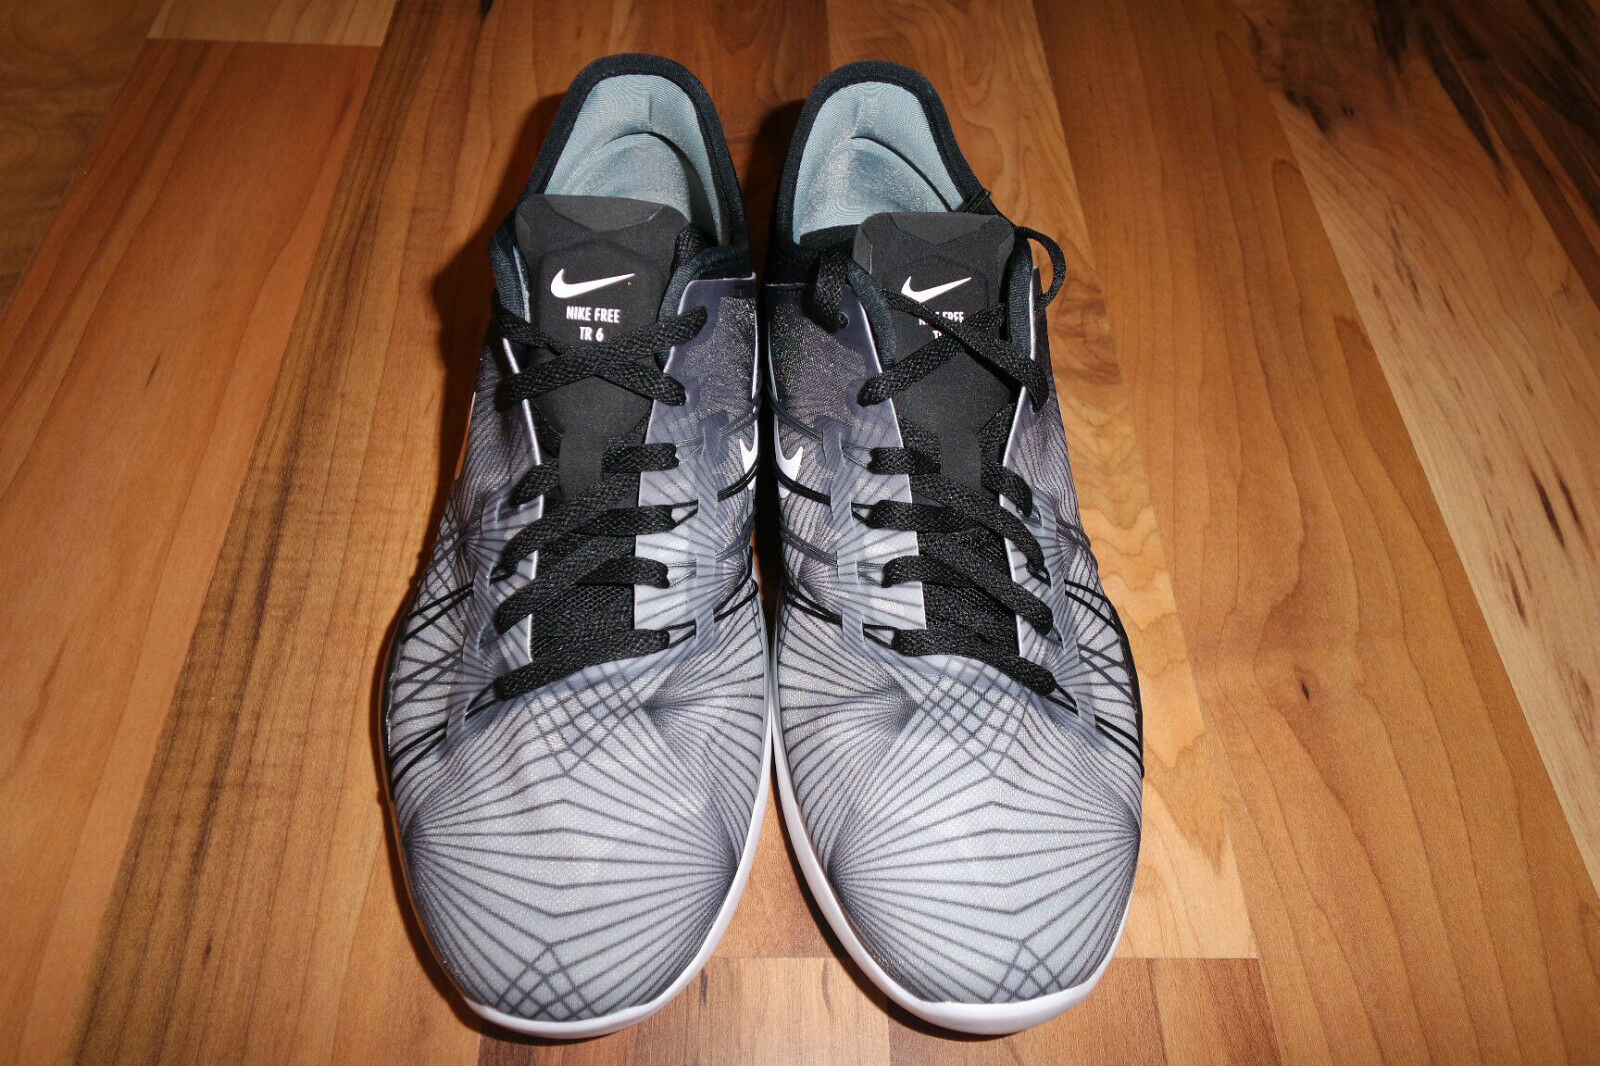 Nike femmes Free TR 6 6 TR Running Trainers Training Chaussures 833424 001 SZ 7 NEW 610a31